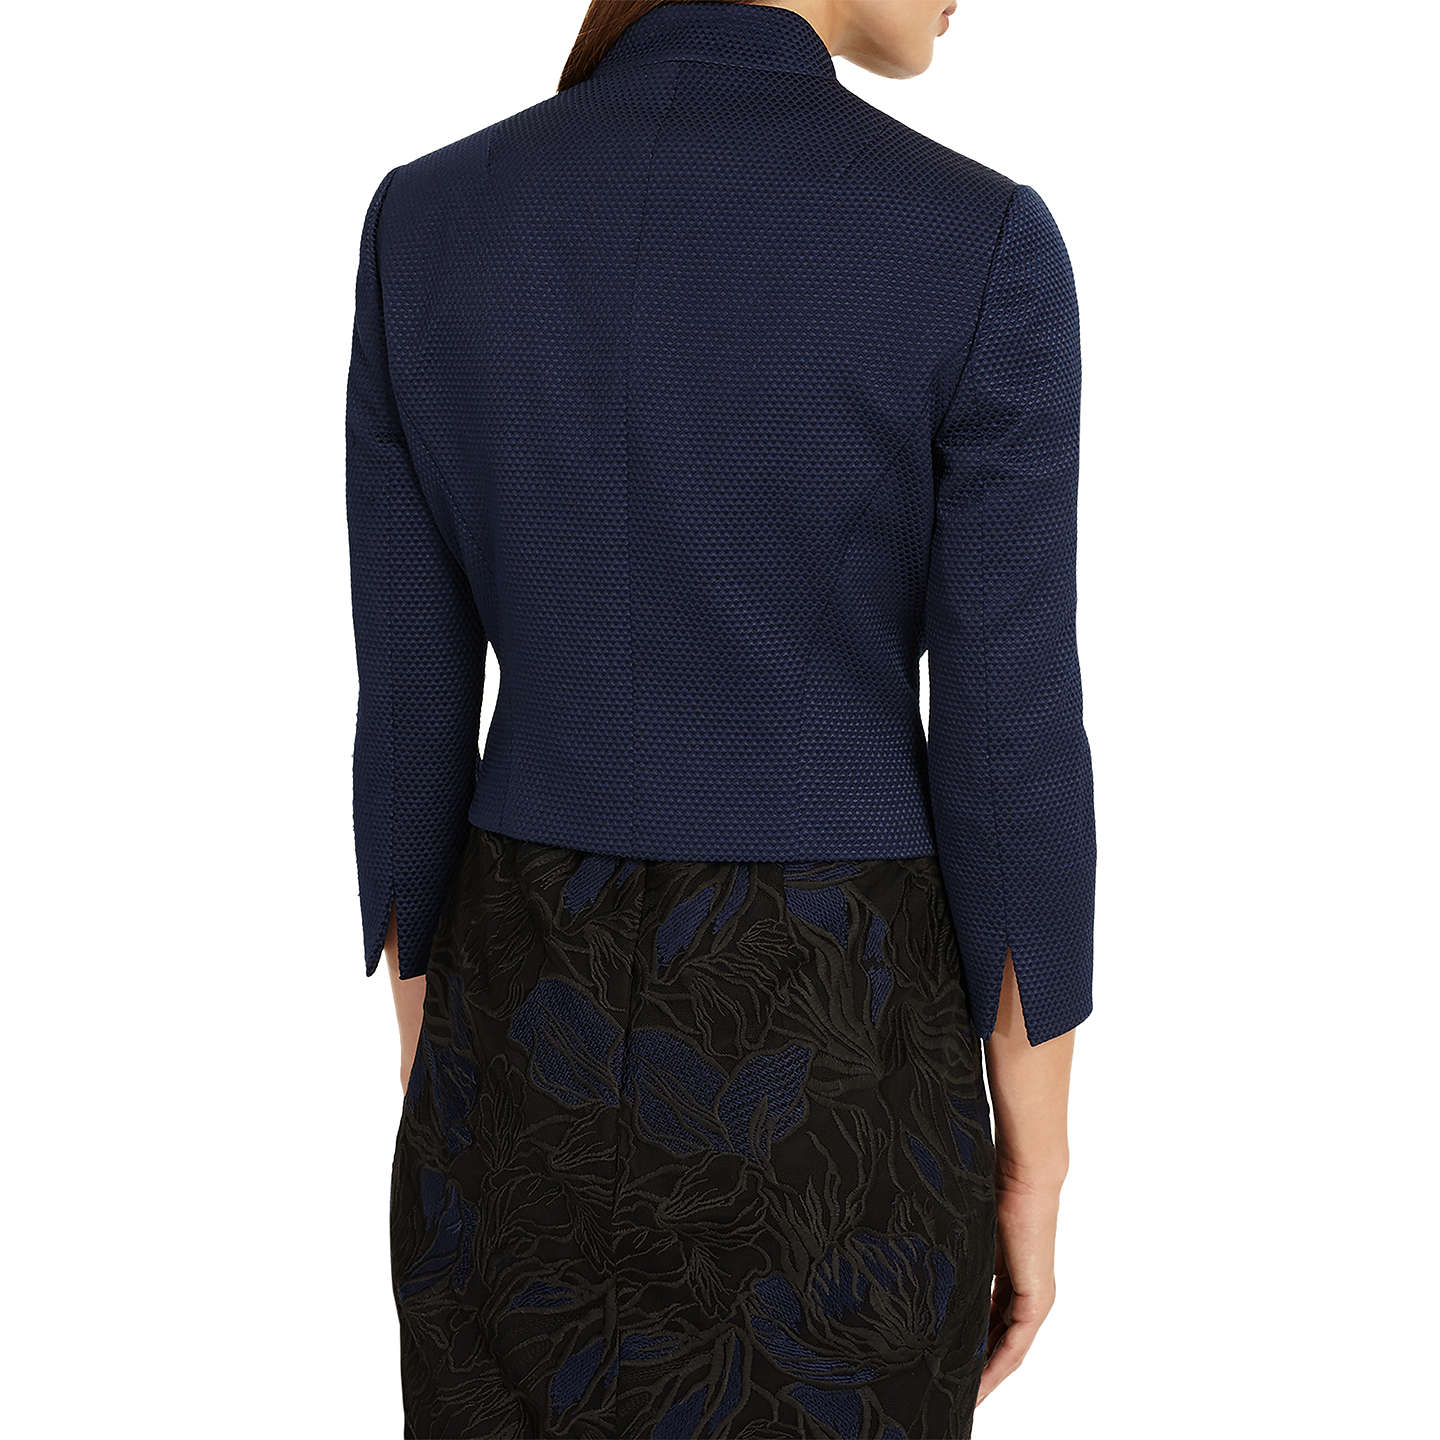 BuyPhase Eight Valda Jacket, Sapphire, 12 Online at johnlewis.com